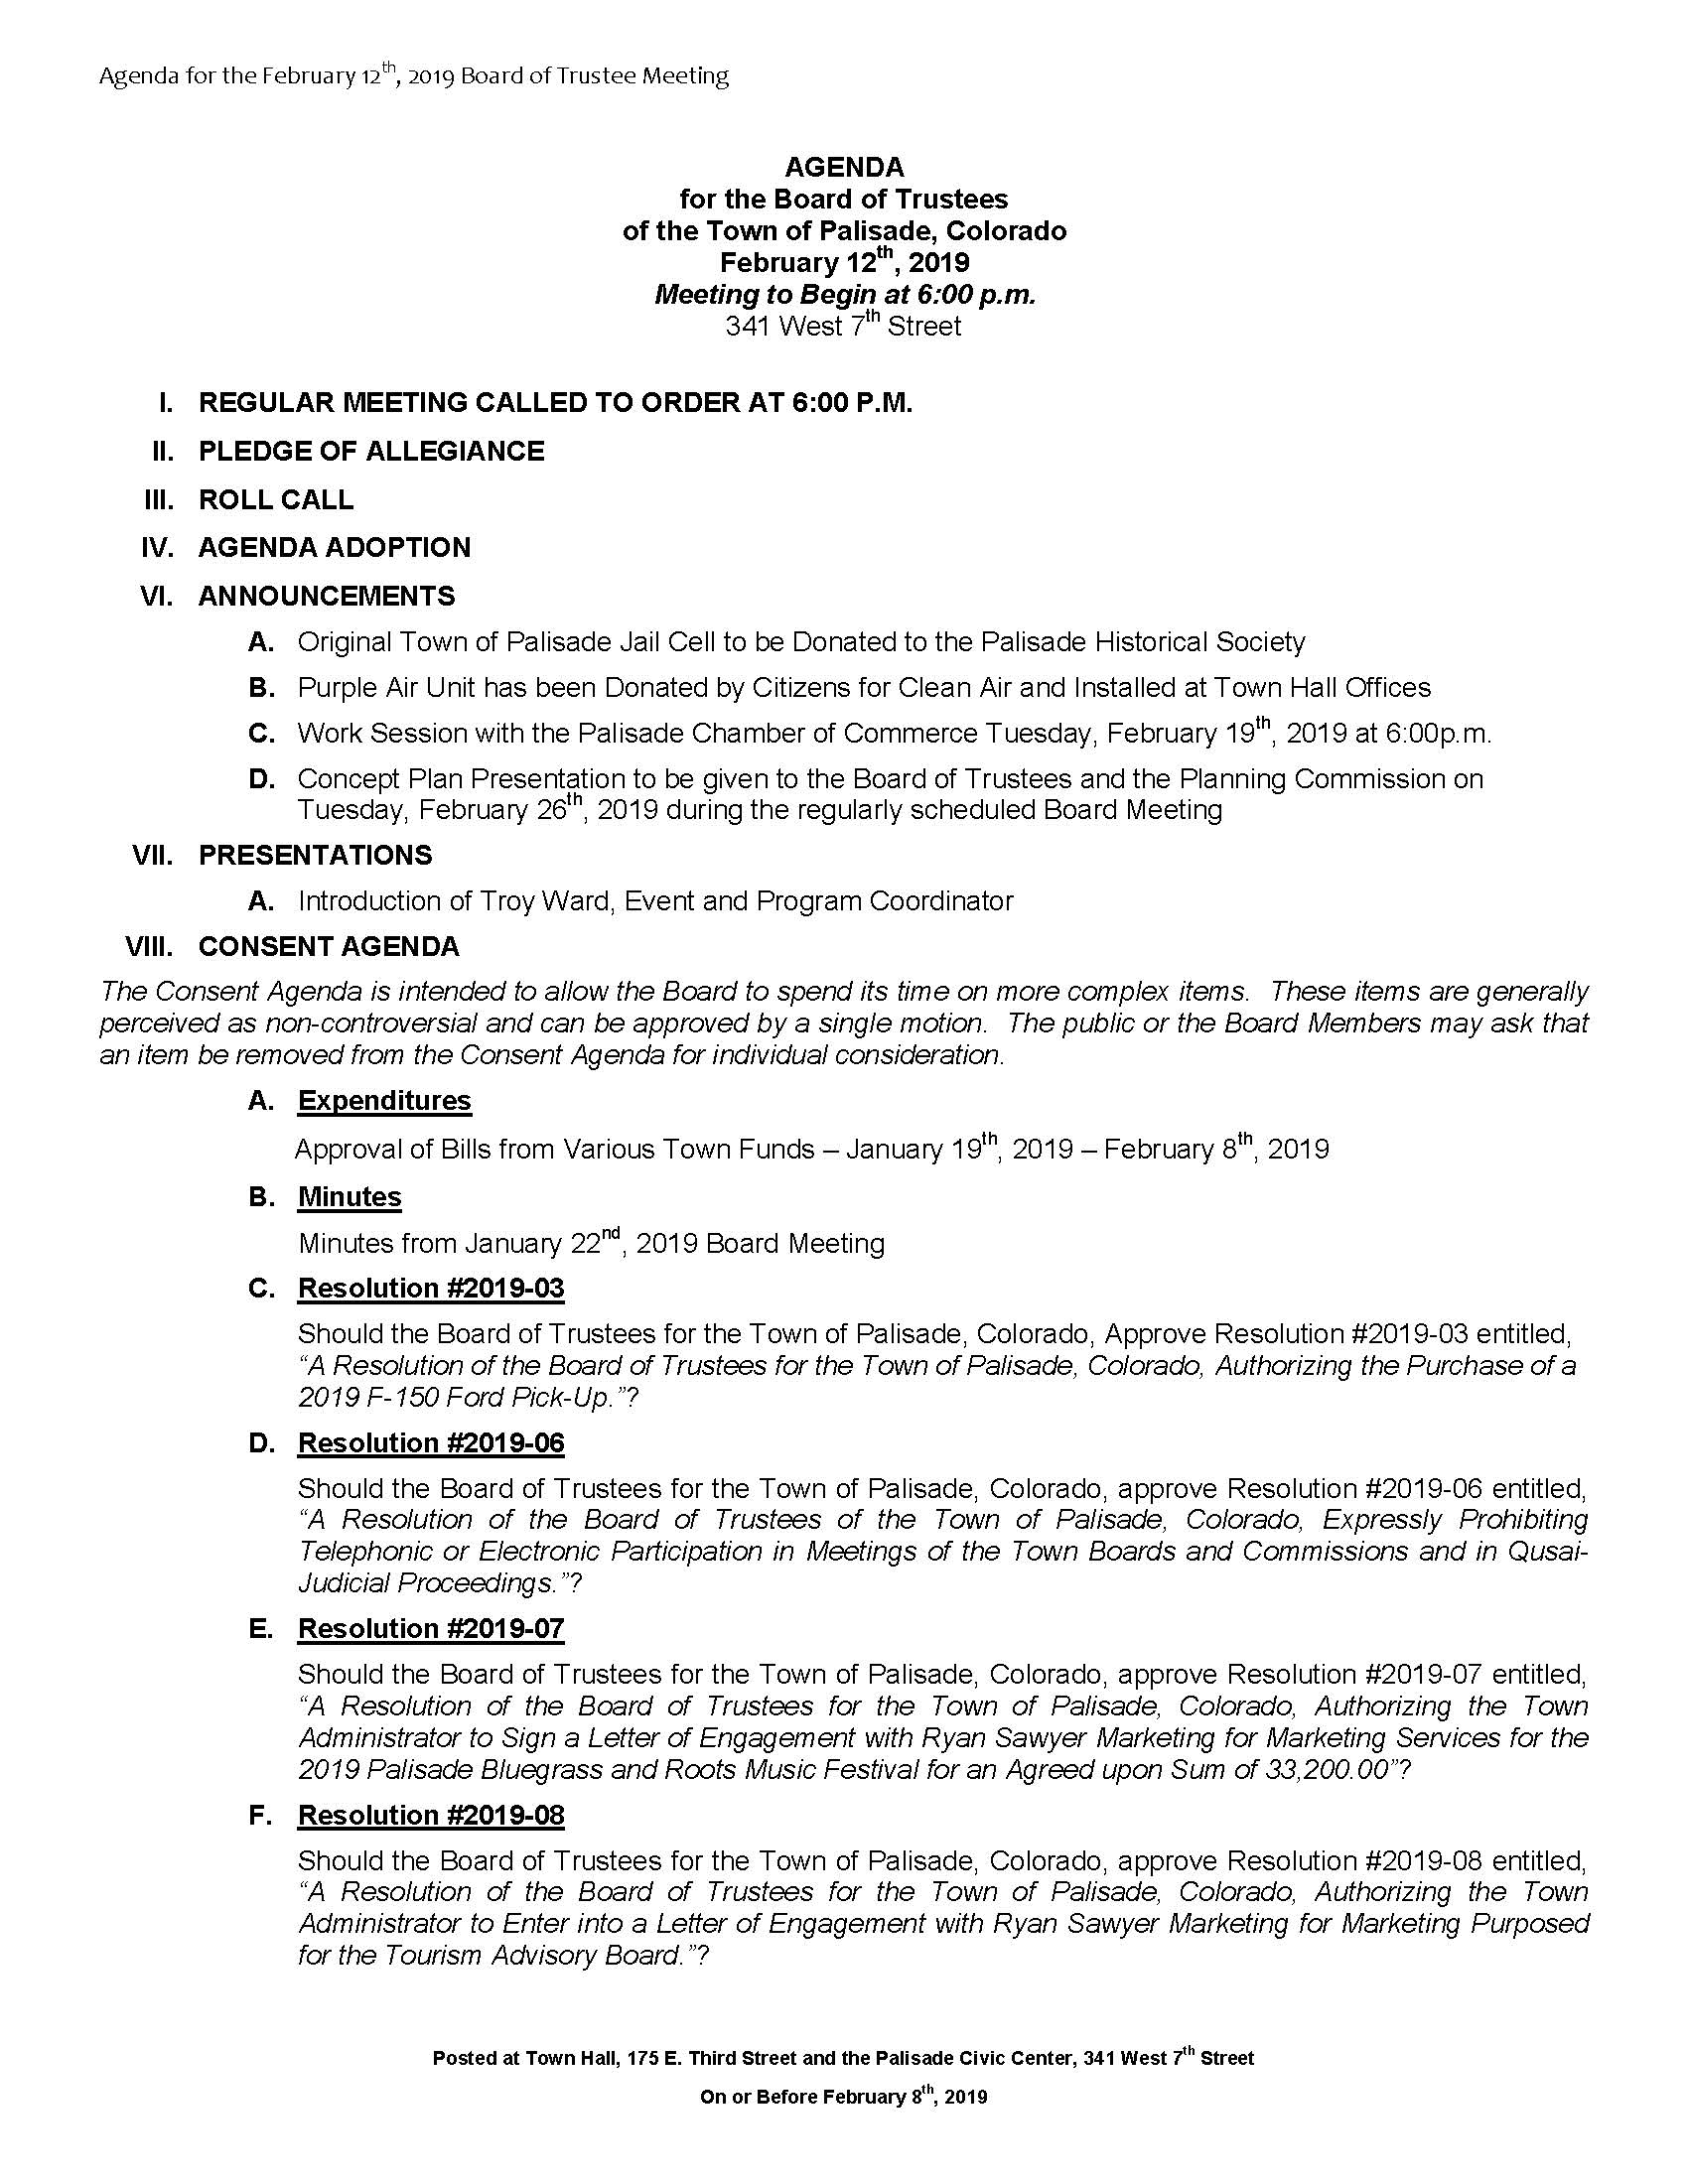 February 12th 2019 Board Meeting Agenda Page 1